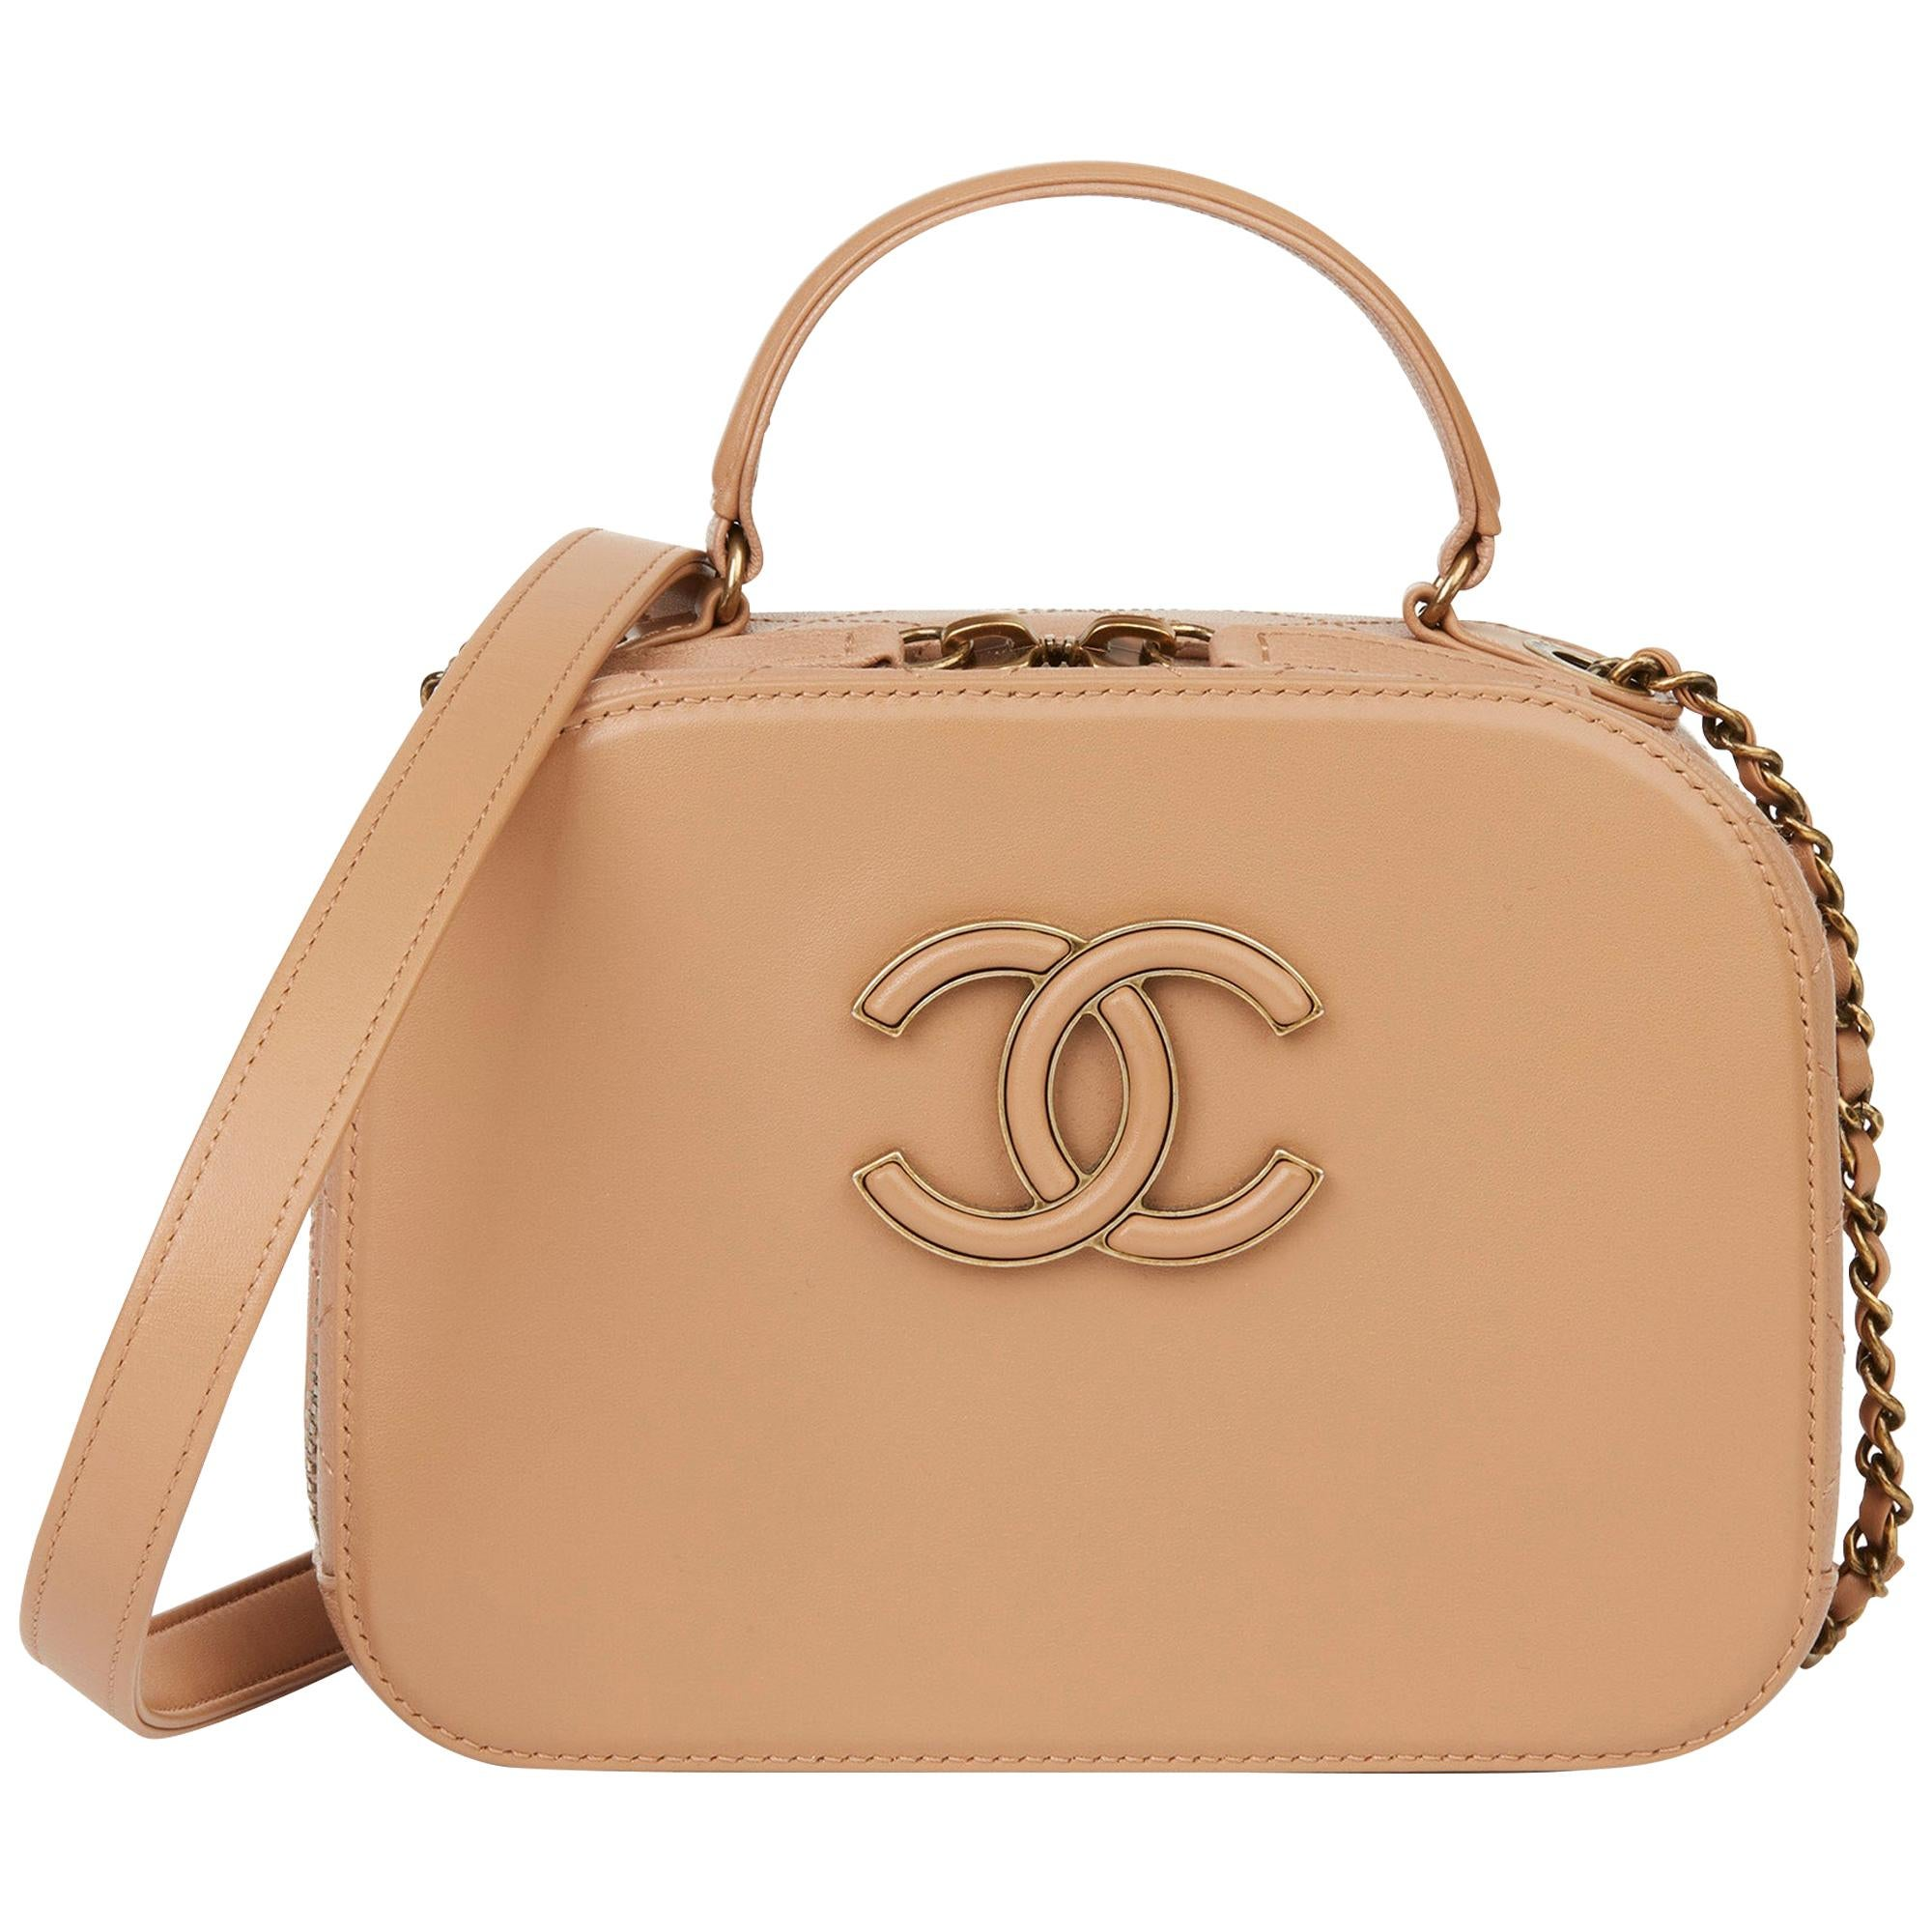 2017 Chanel Warm Beige Lambskin & Quilted Goatskin Small Coco Curve Vanity Bag